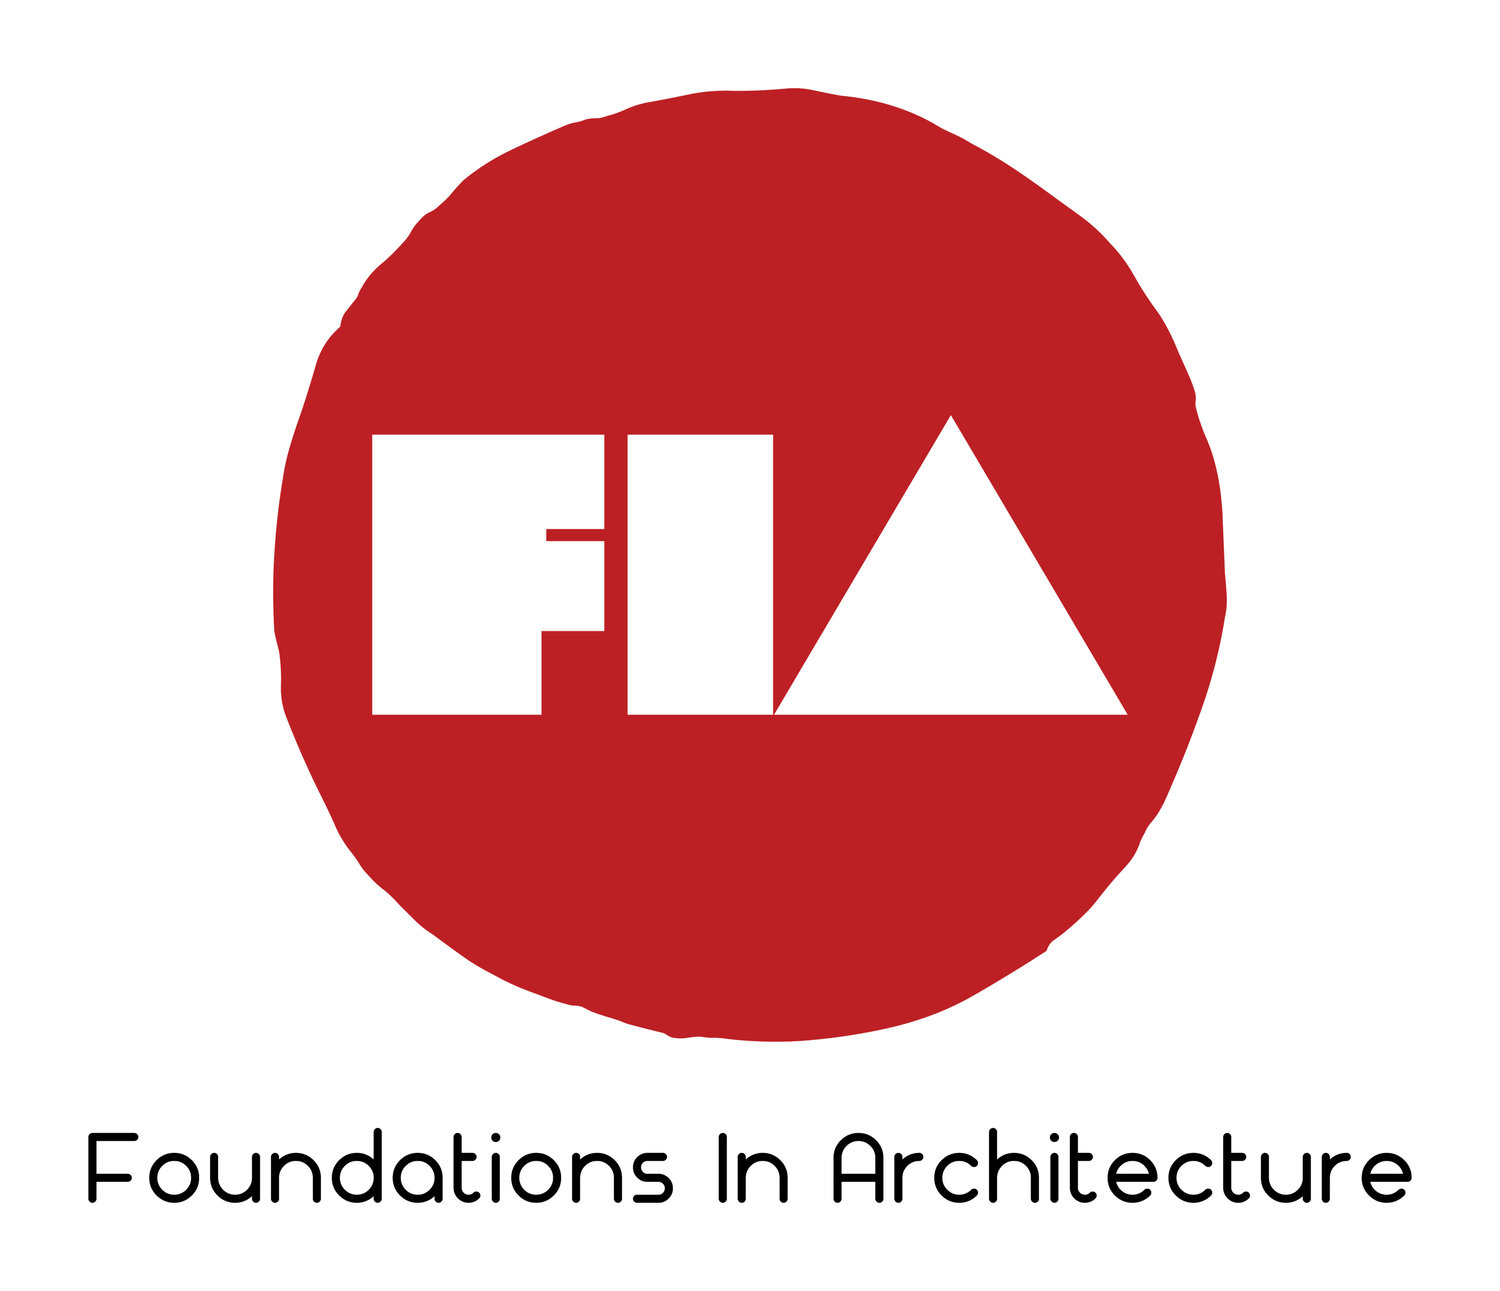 Foundations In Architecture